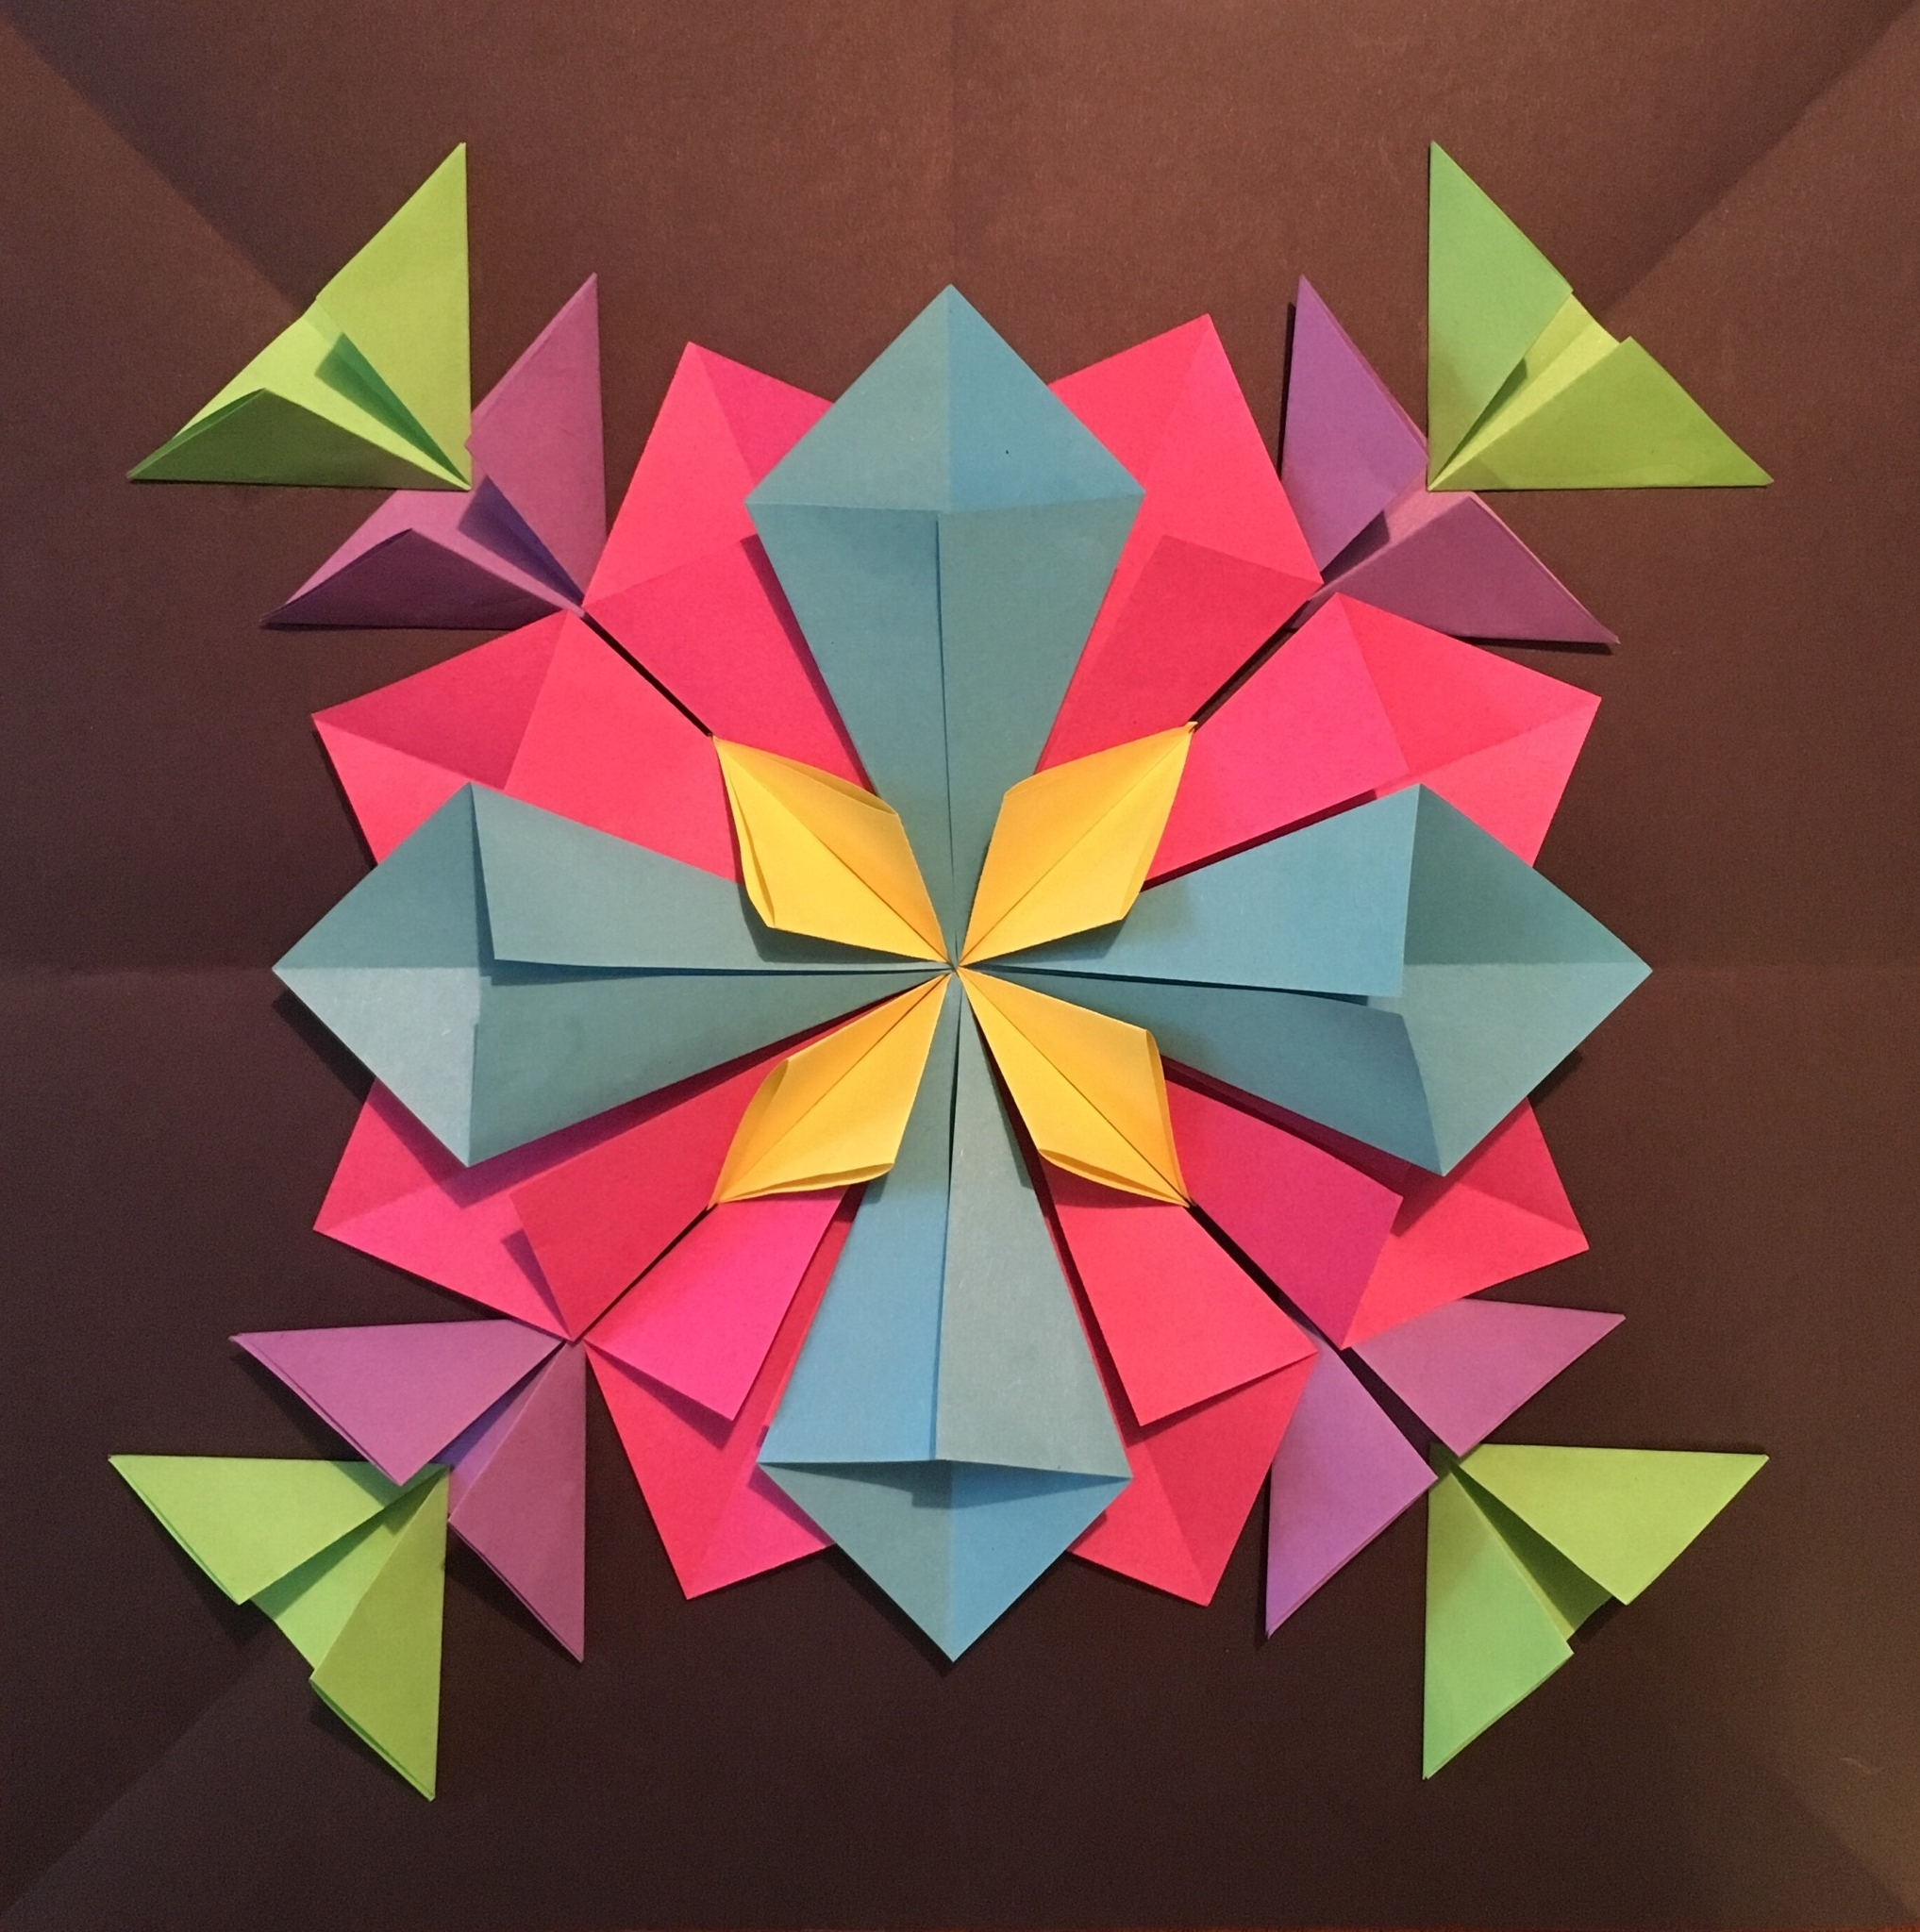 Preferred How To Create A 3d Radial Symmetry Paper Sculpture (View 15 of 15)